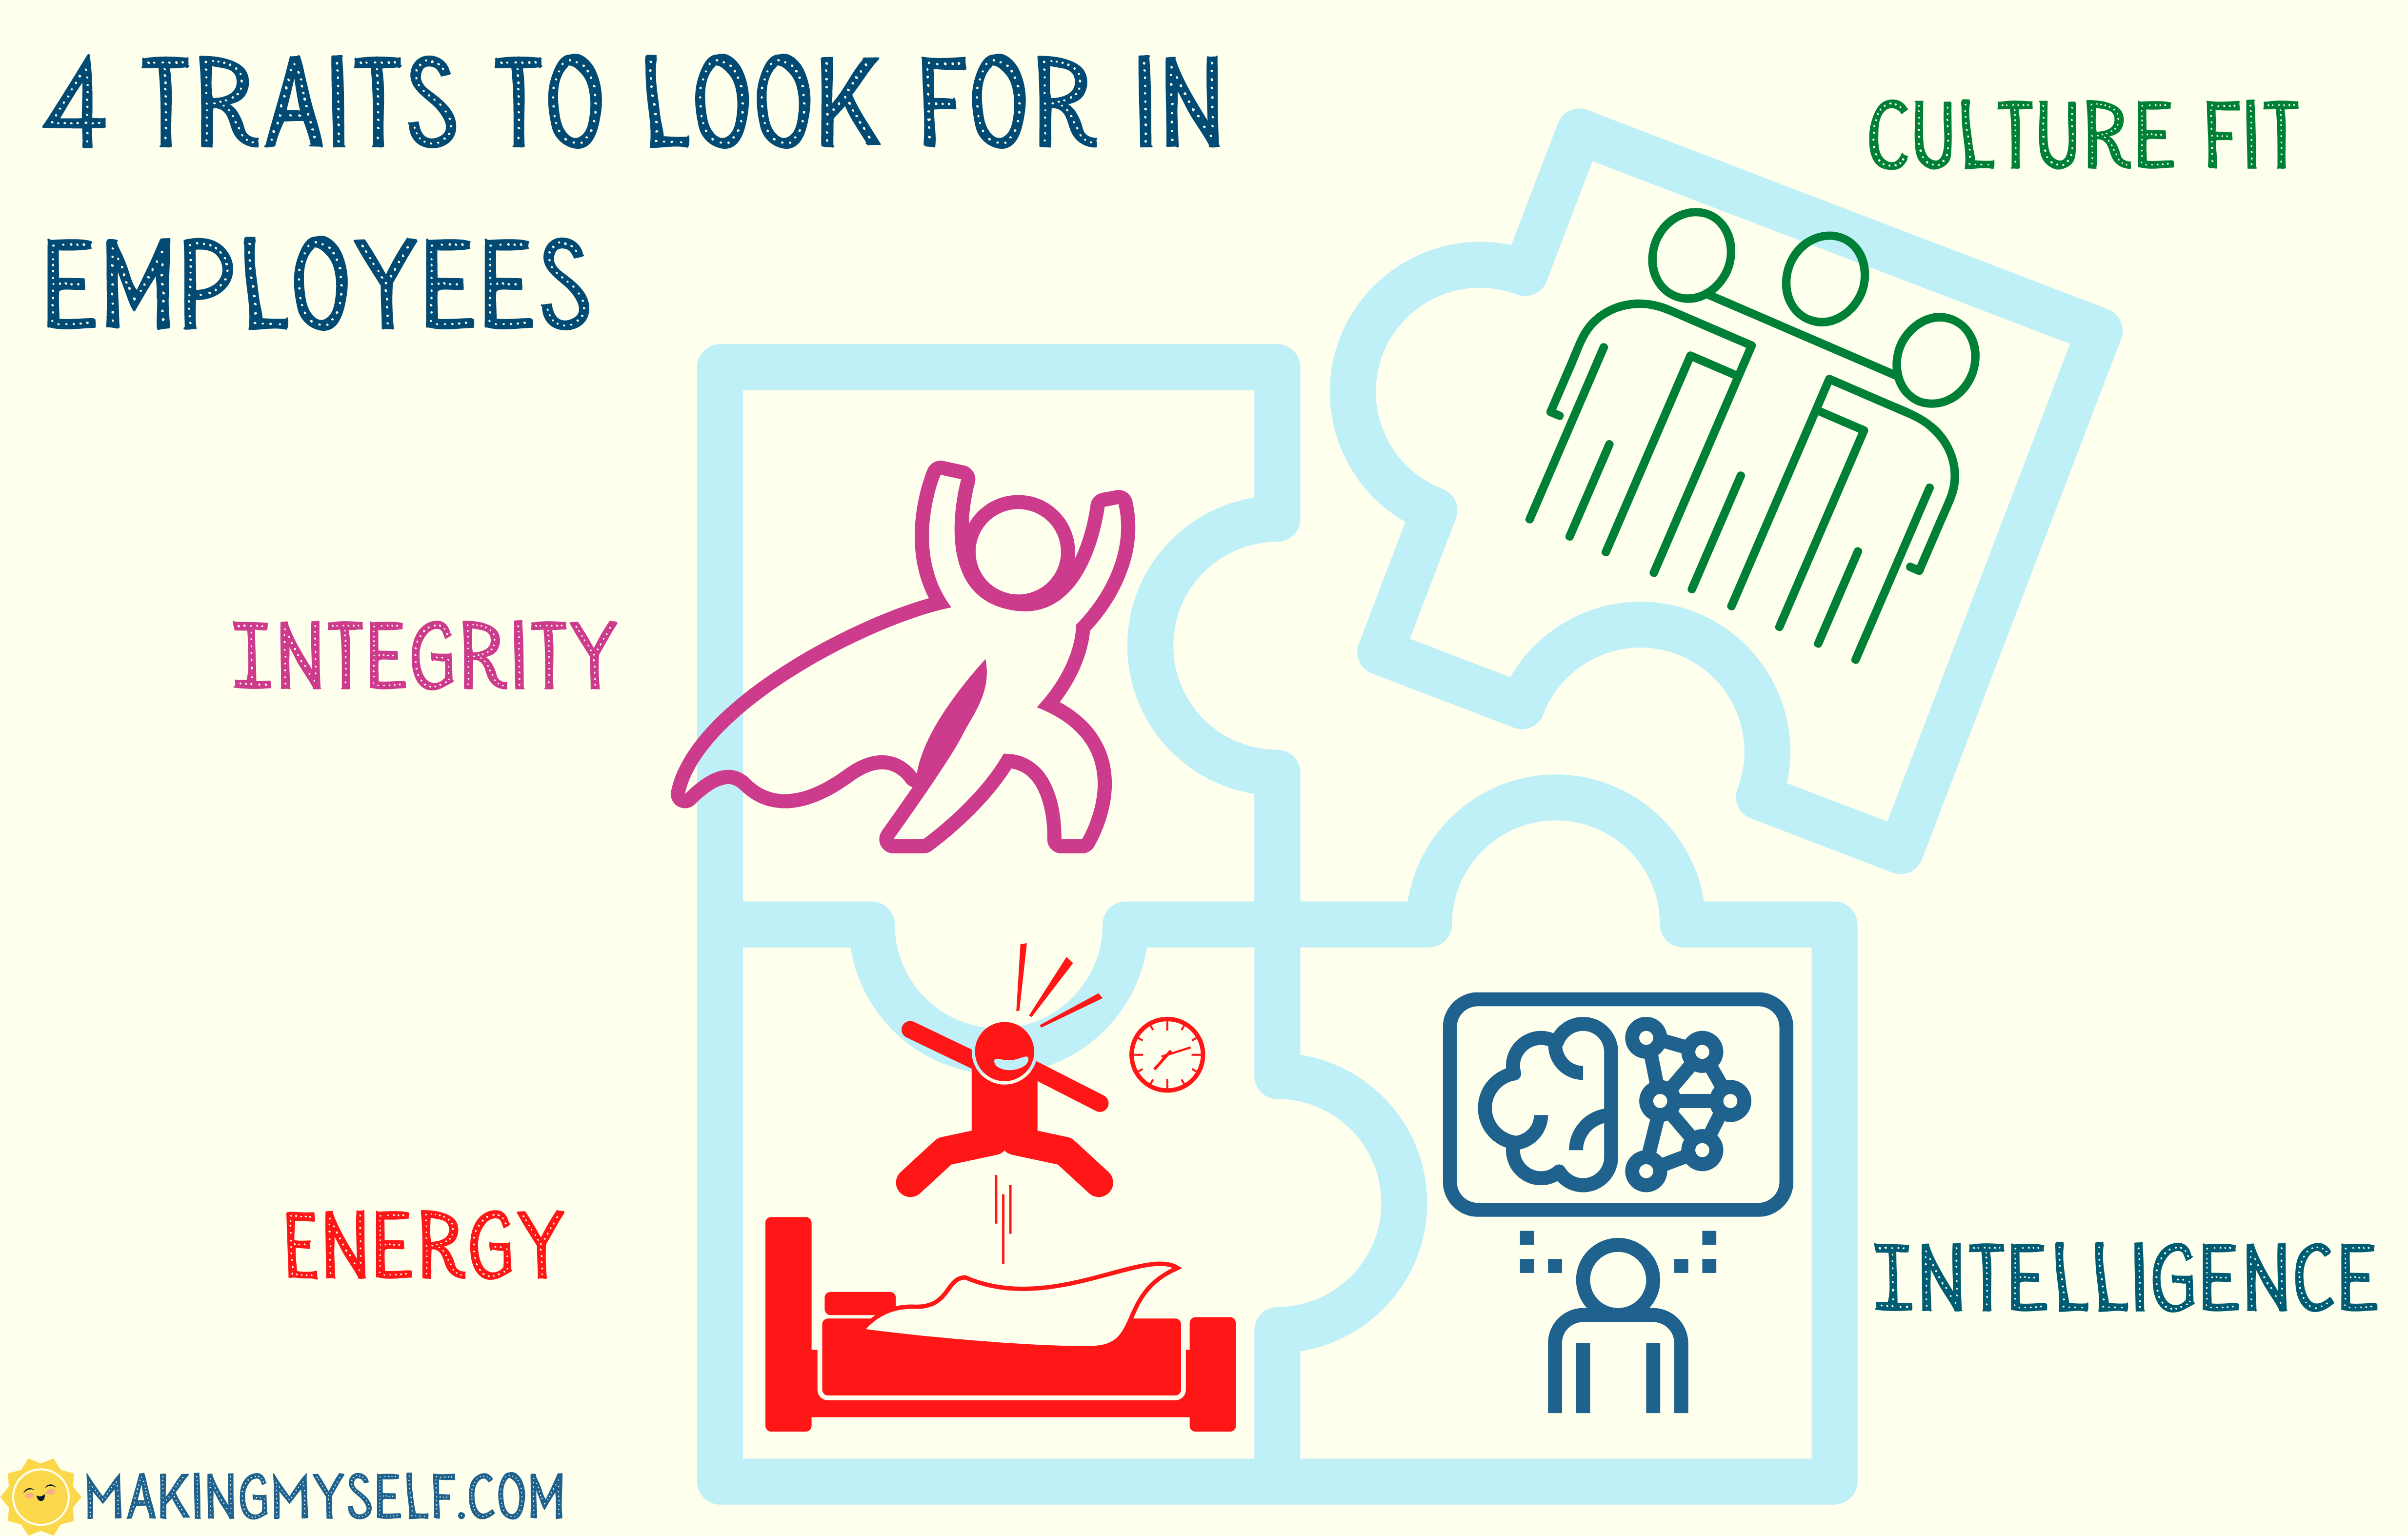 The 4 traits to look for in employees